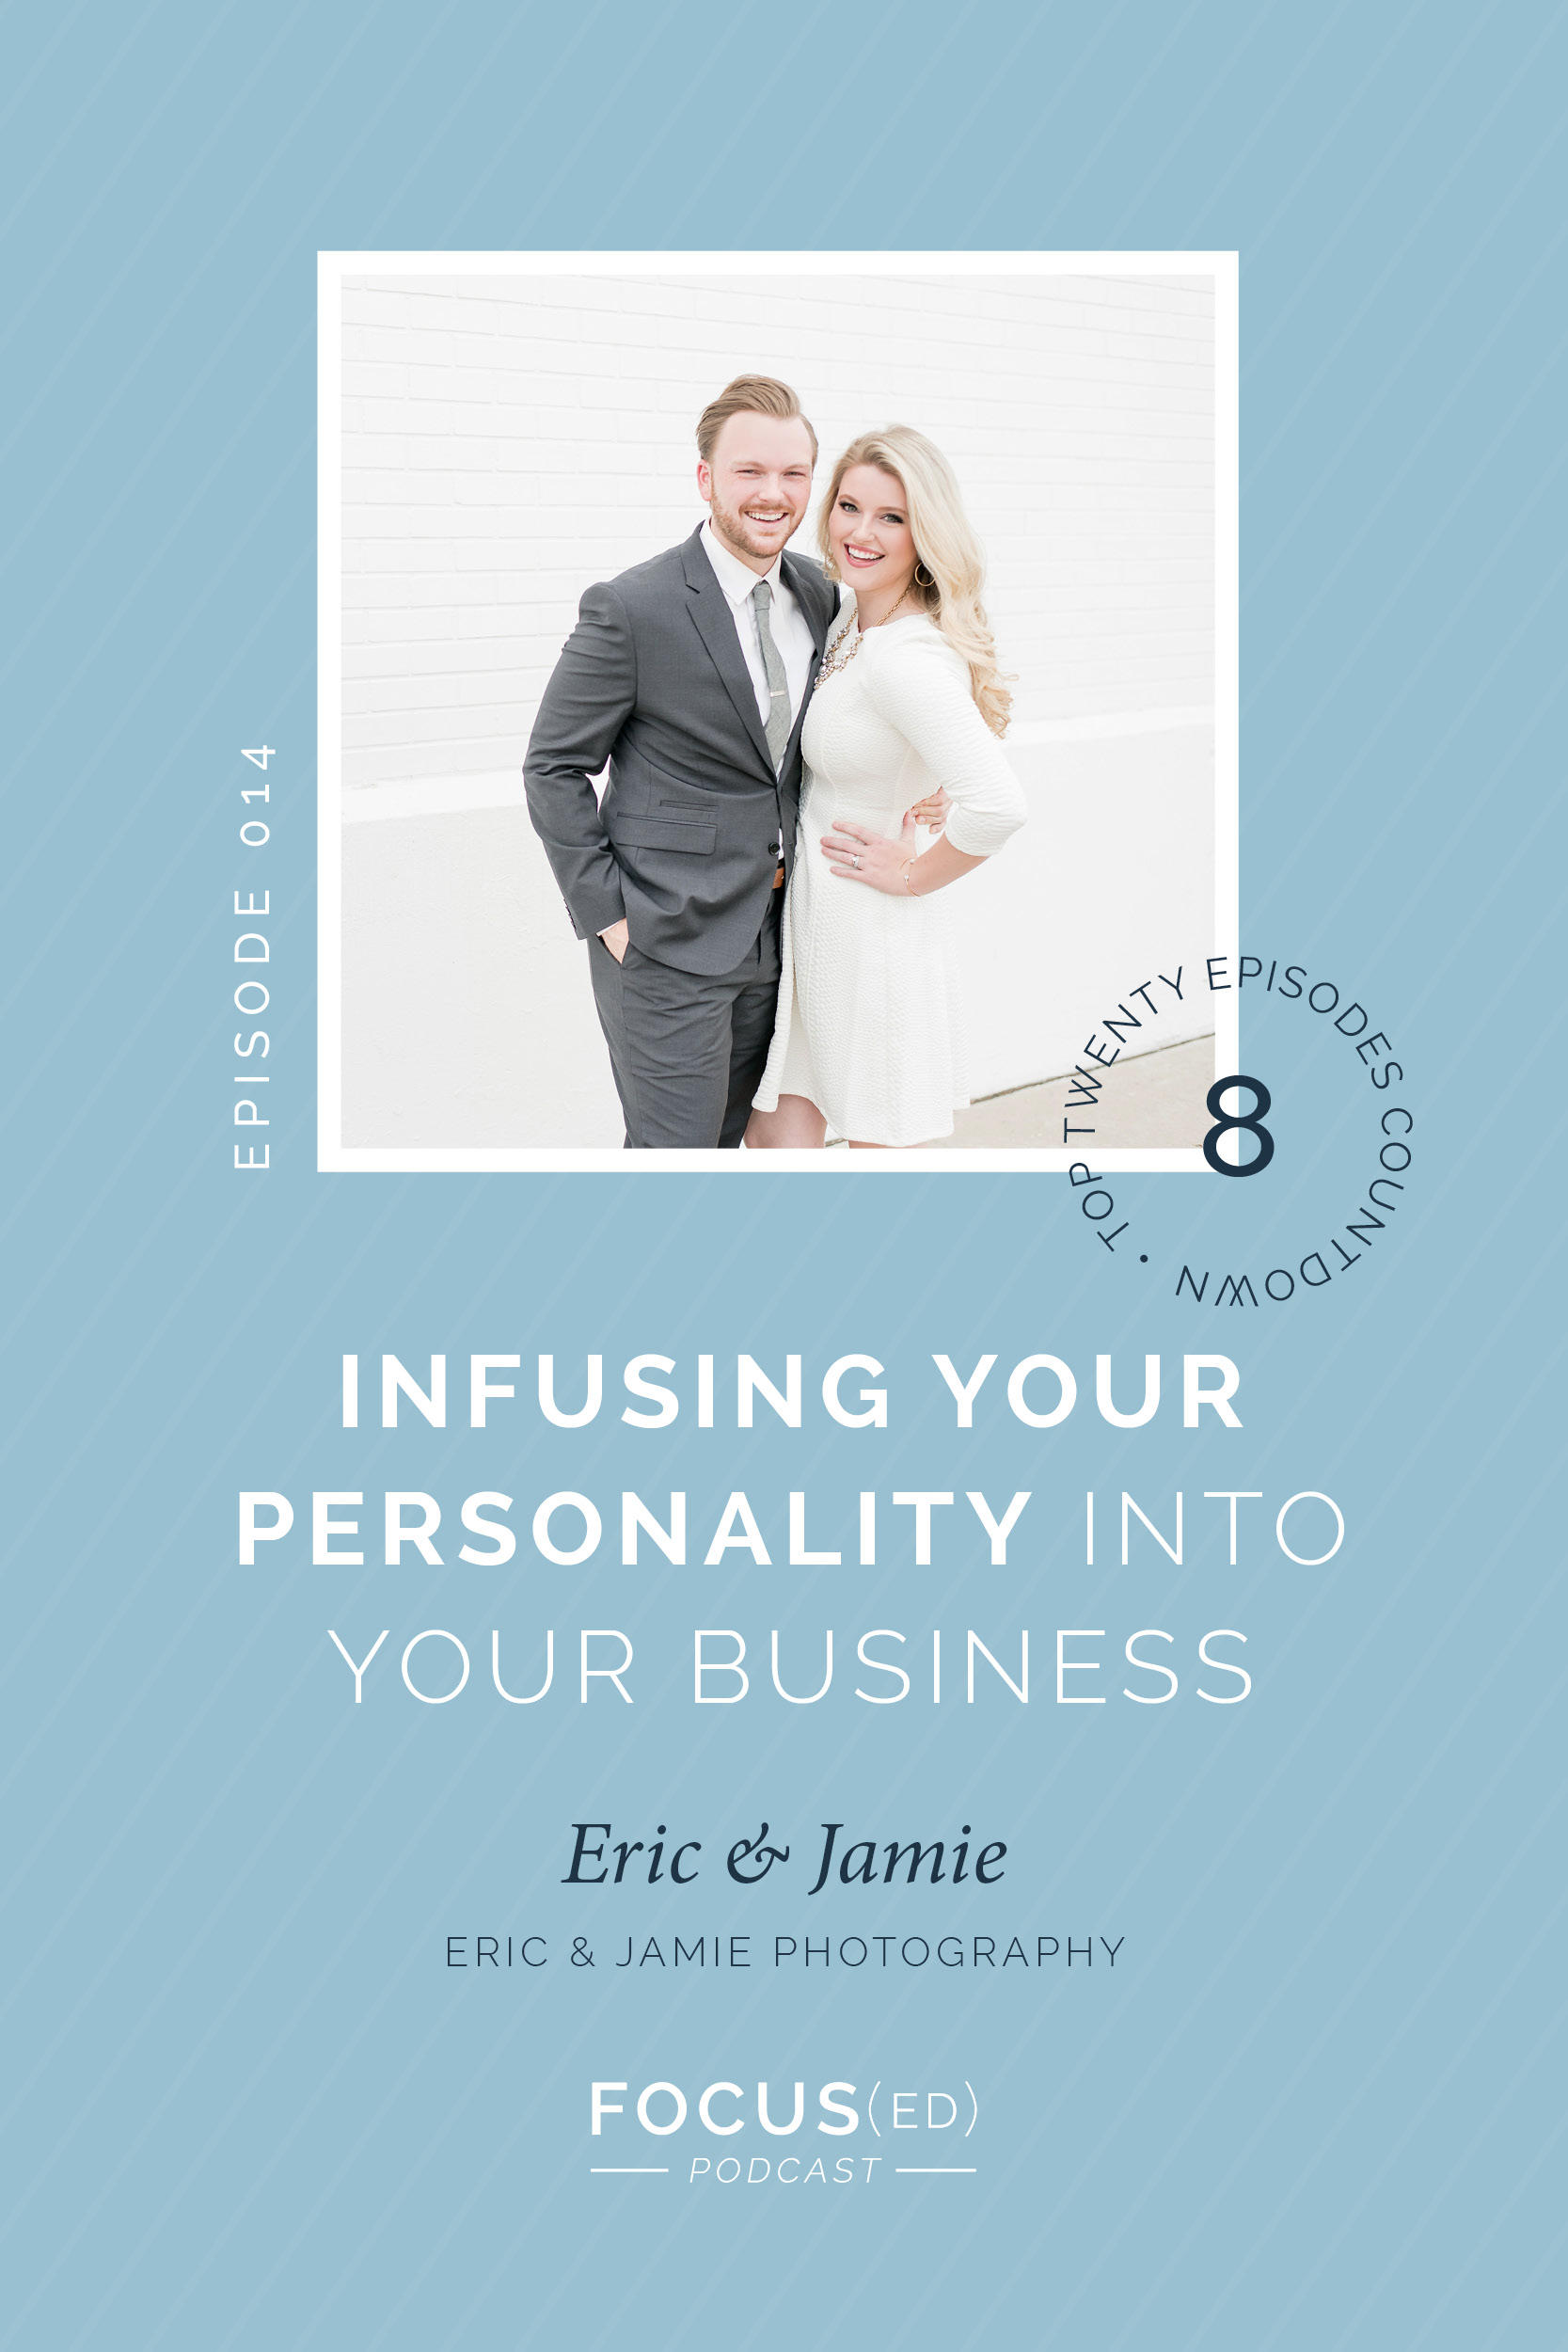 Top 20: #8 Infusing your personality into your business, Eric & Jamie  |  Focus(ed) Podcast